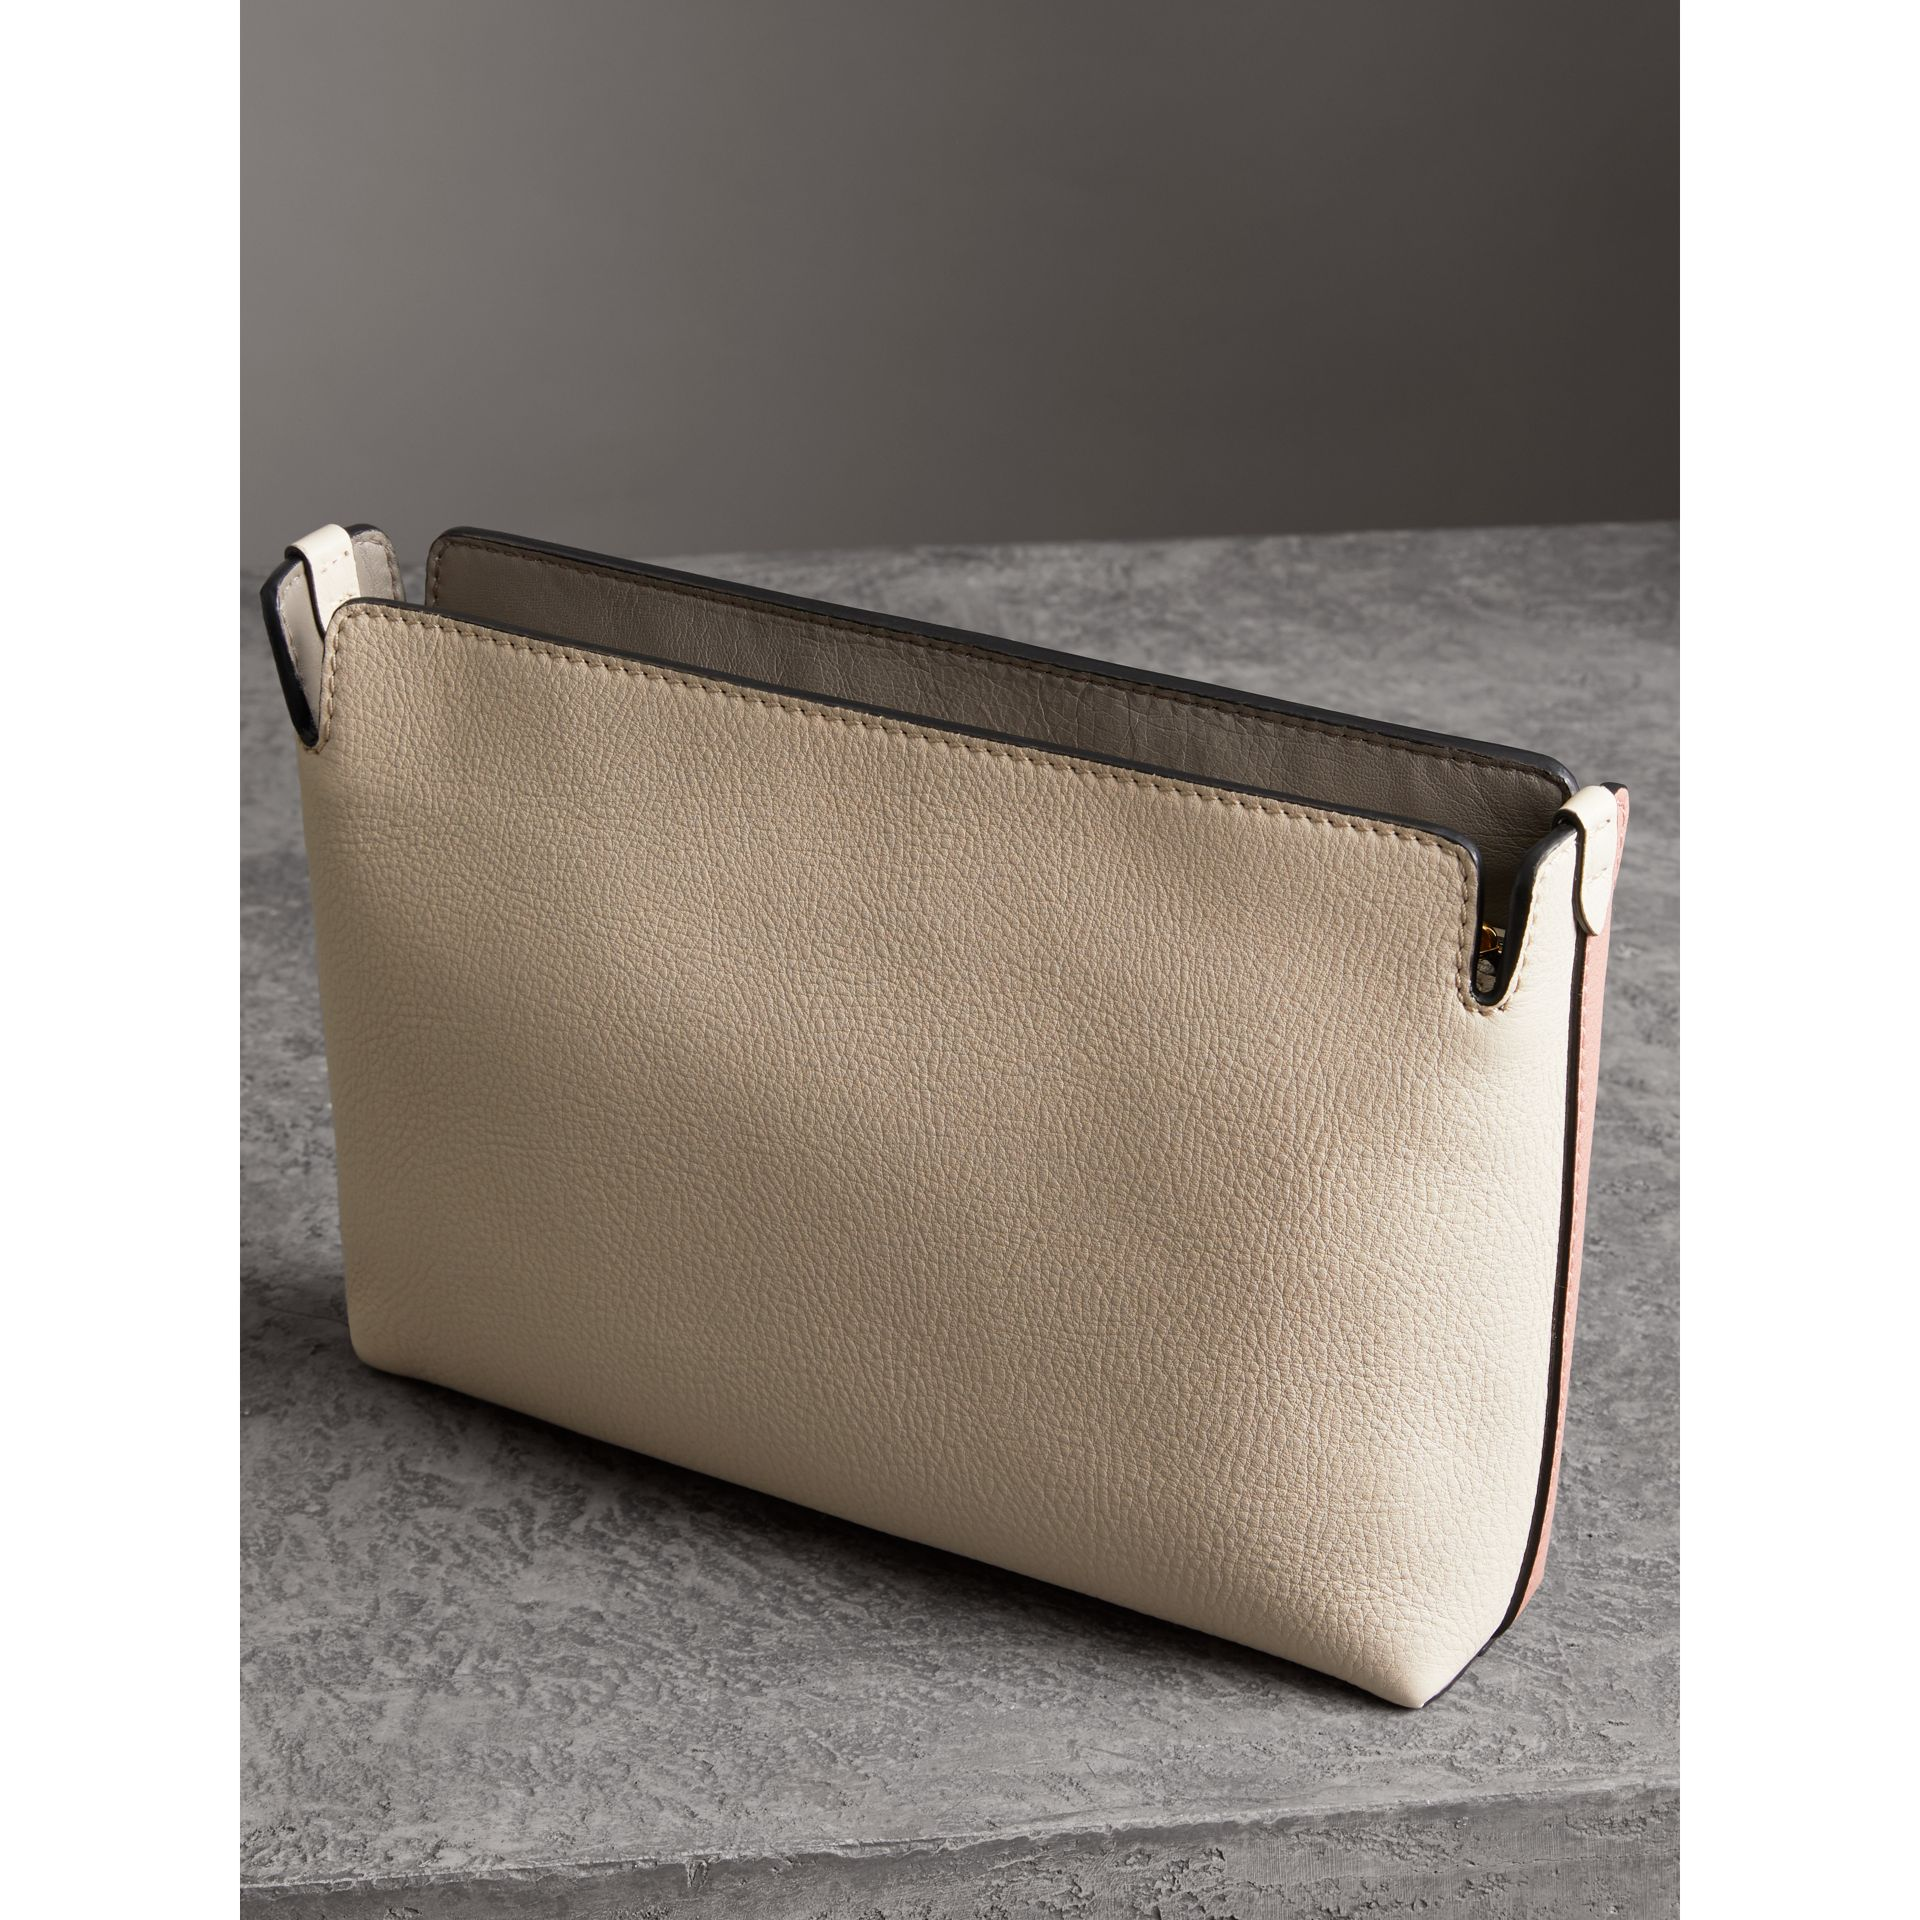 Medium Tri-tone Leather Clutch in Dusty Rose/limestone | Burberry - gallery image 4